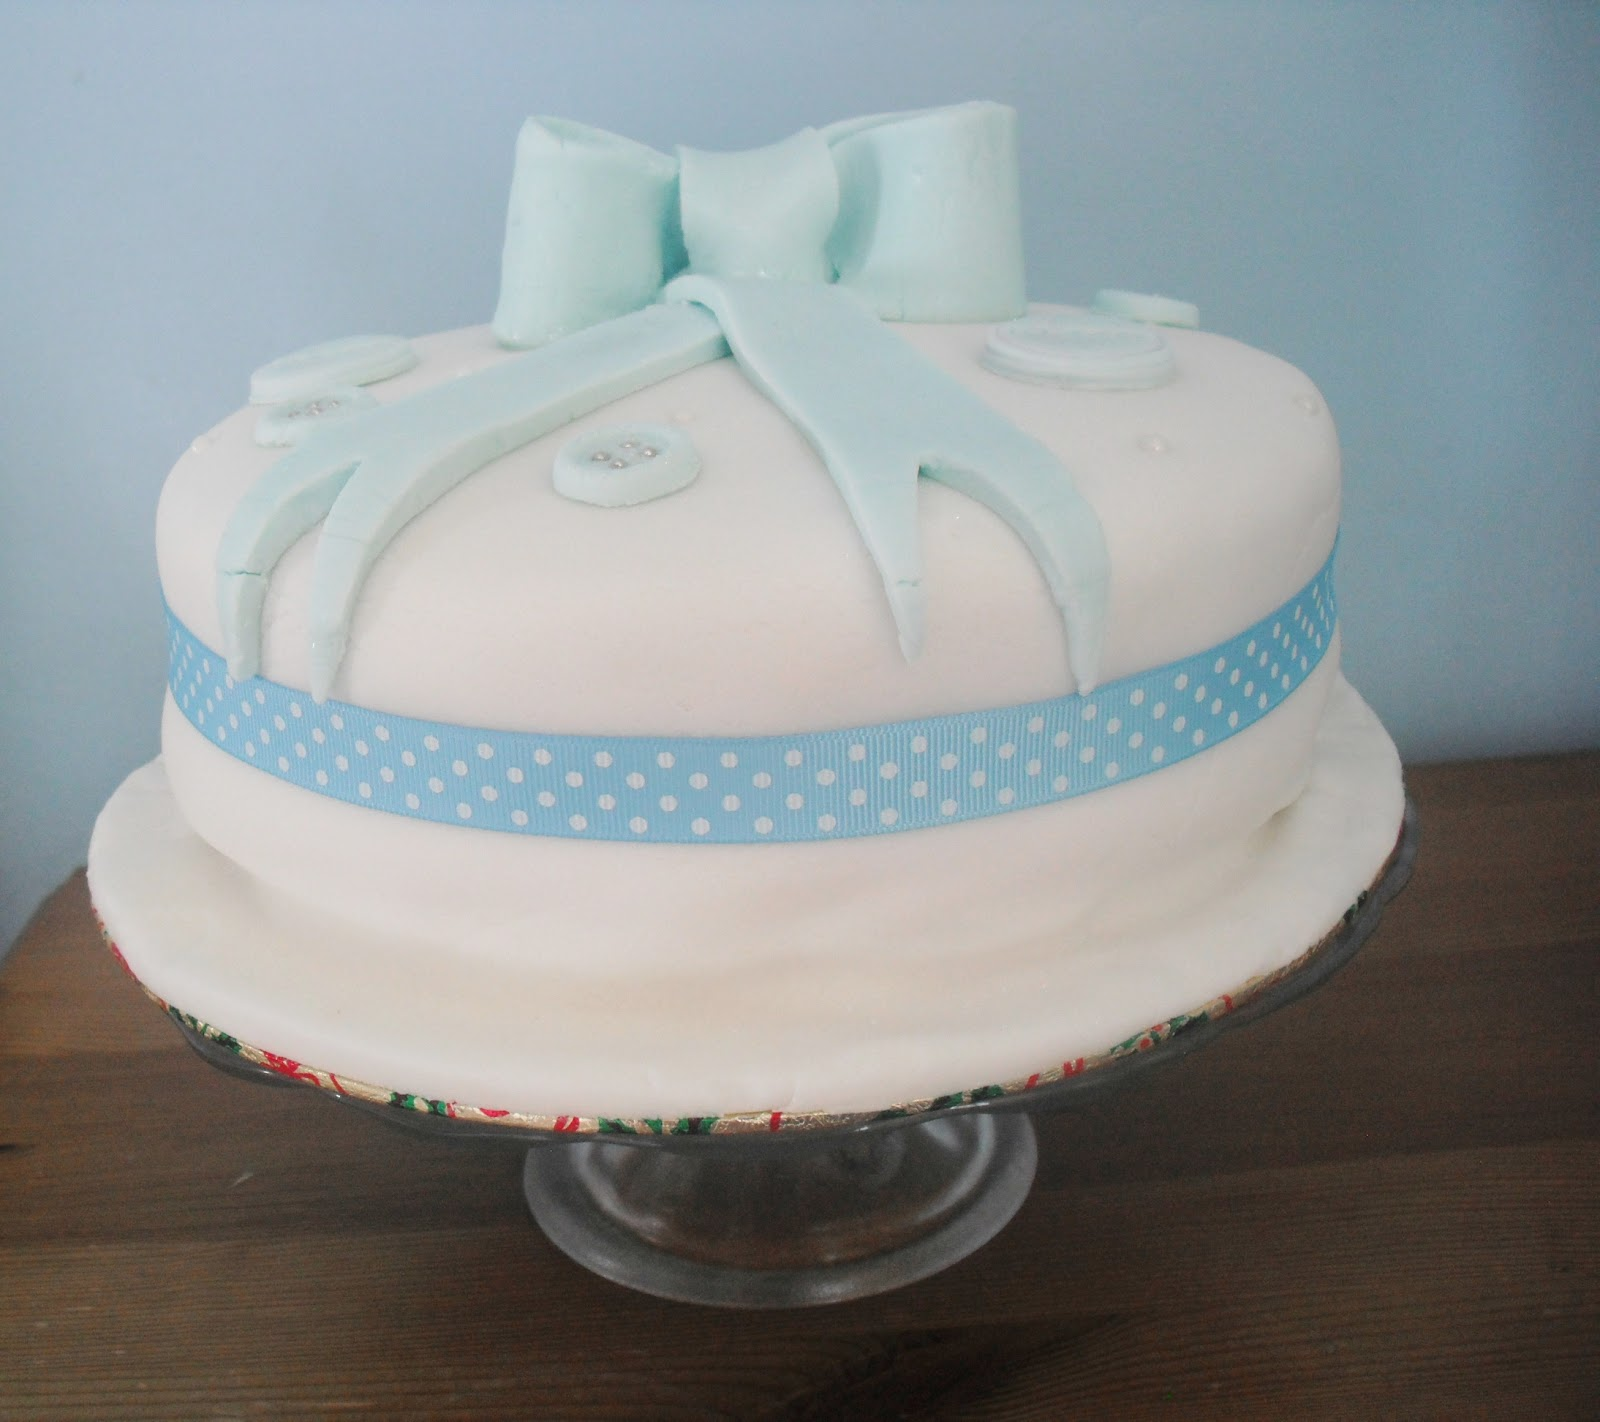 Cake Decorations At Asda : My Sisters Baby Shower - Cake + DIY Gift   Victoria s ...